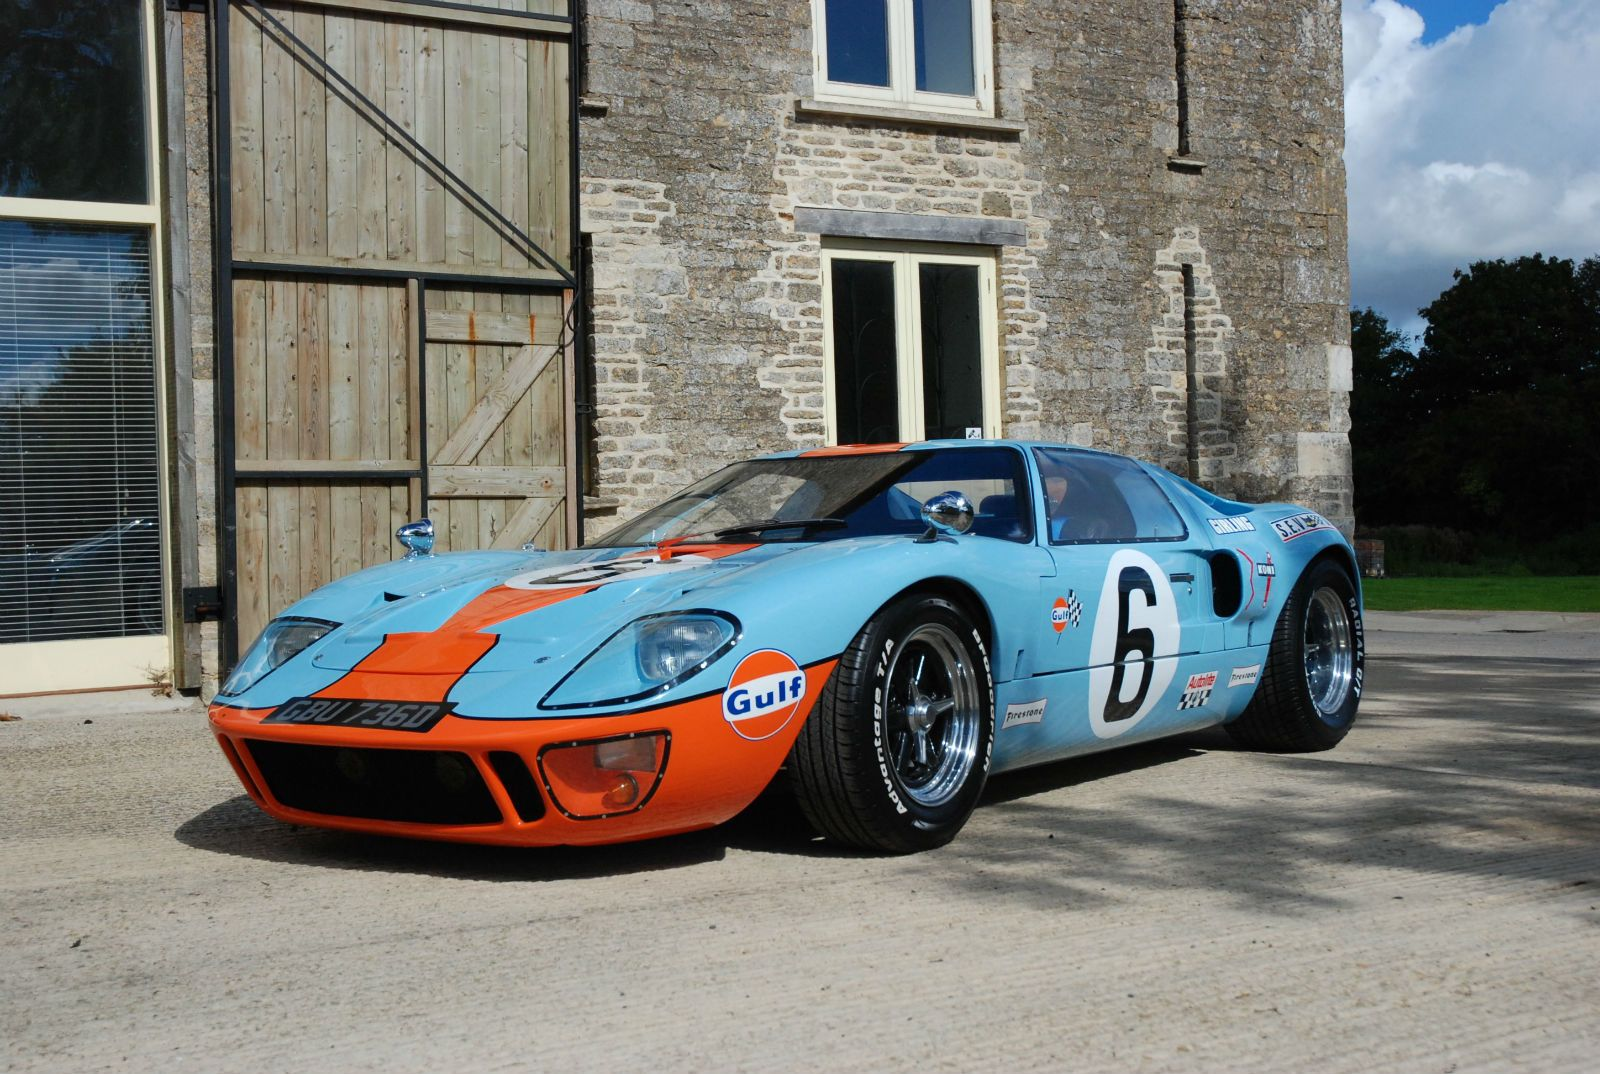 Ford Gt40 Jacky Ickx Gt40 Gulf Colours Sold Ford Gt40 Gt40 Ford Gt